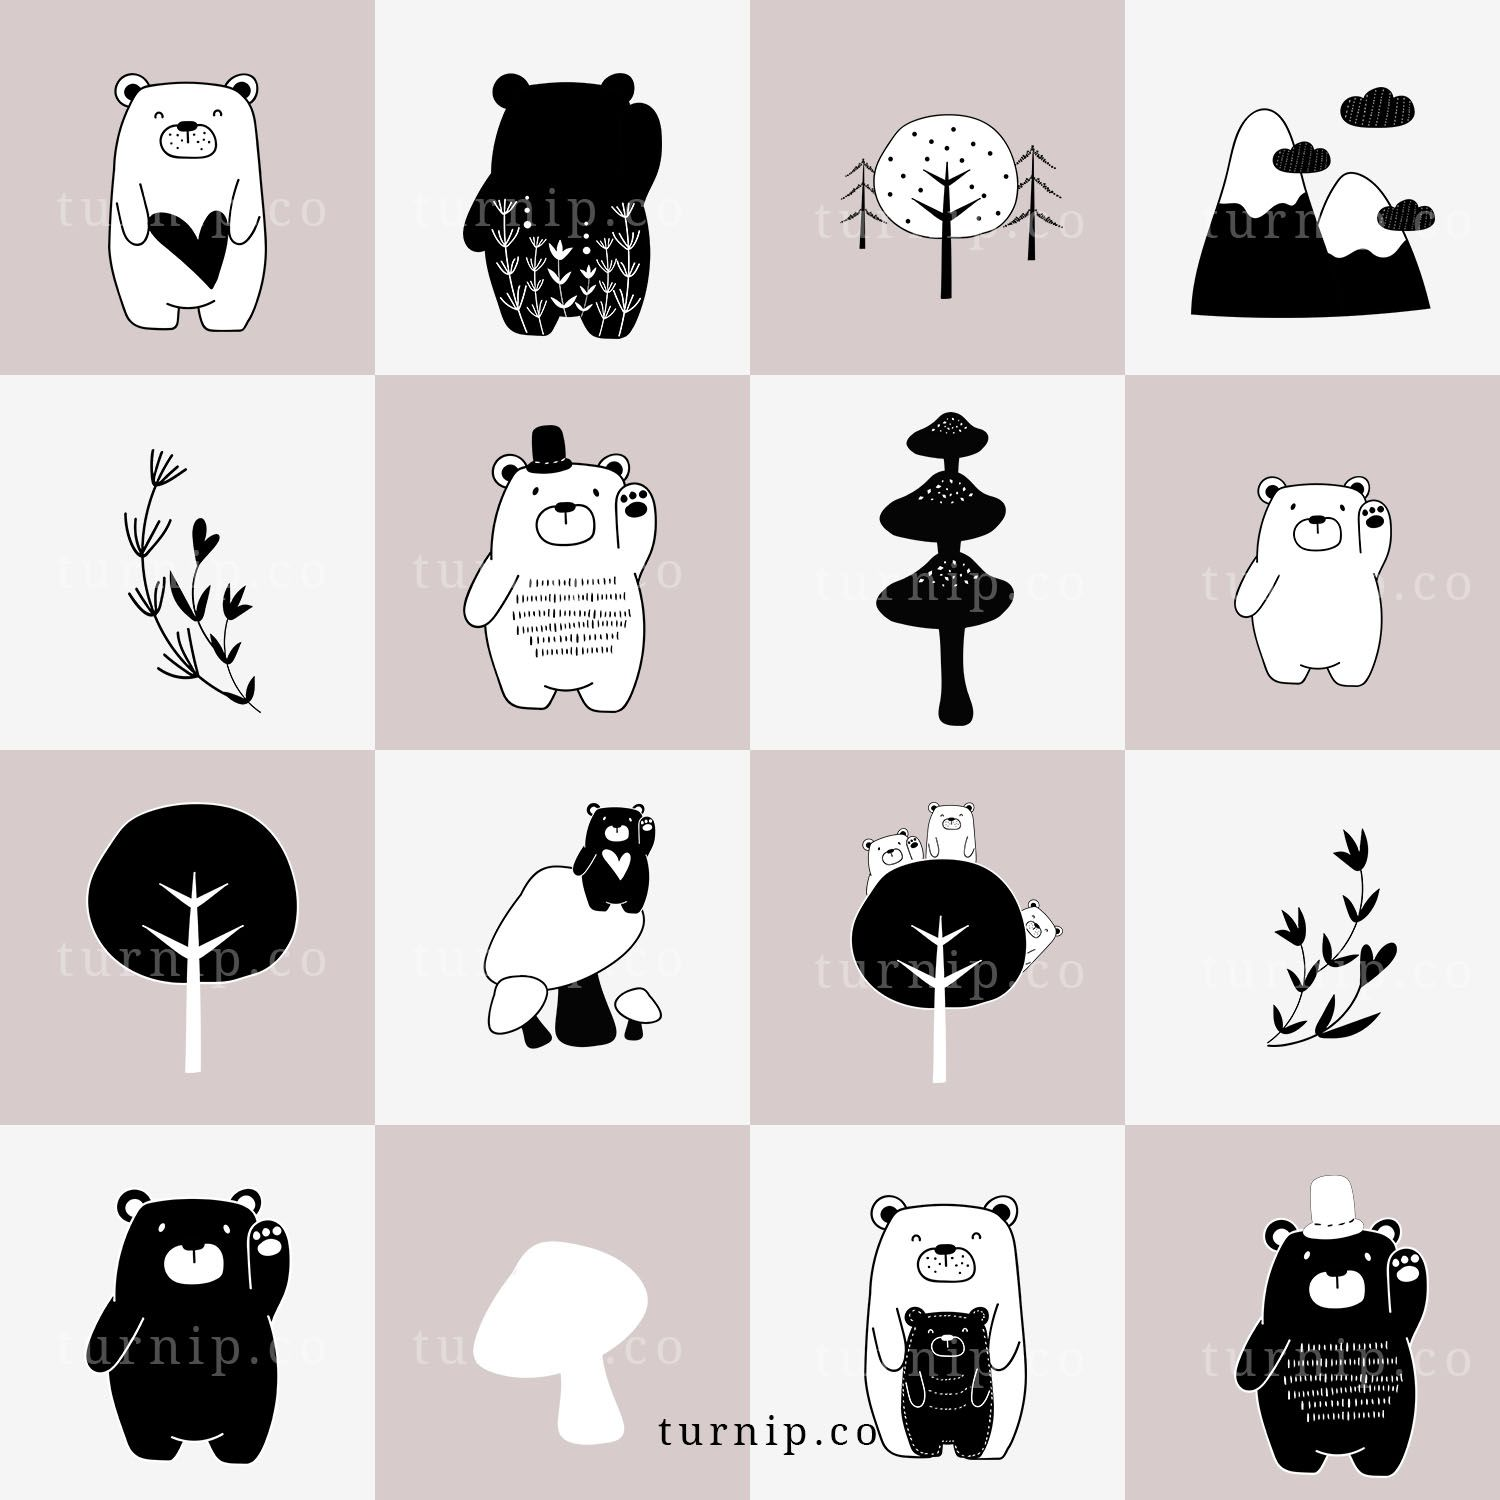 101 Bear Cartoon Image Clipart, Black and White Bear Clipart.